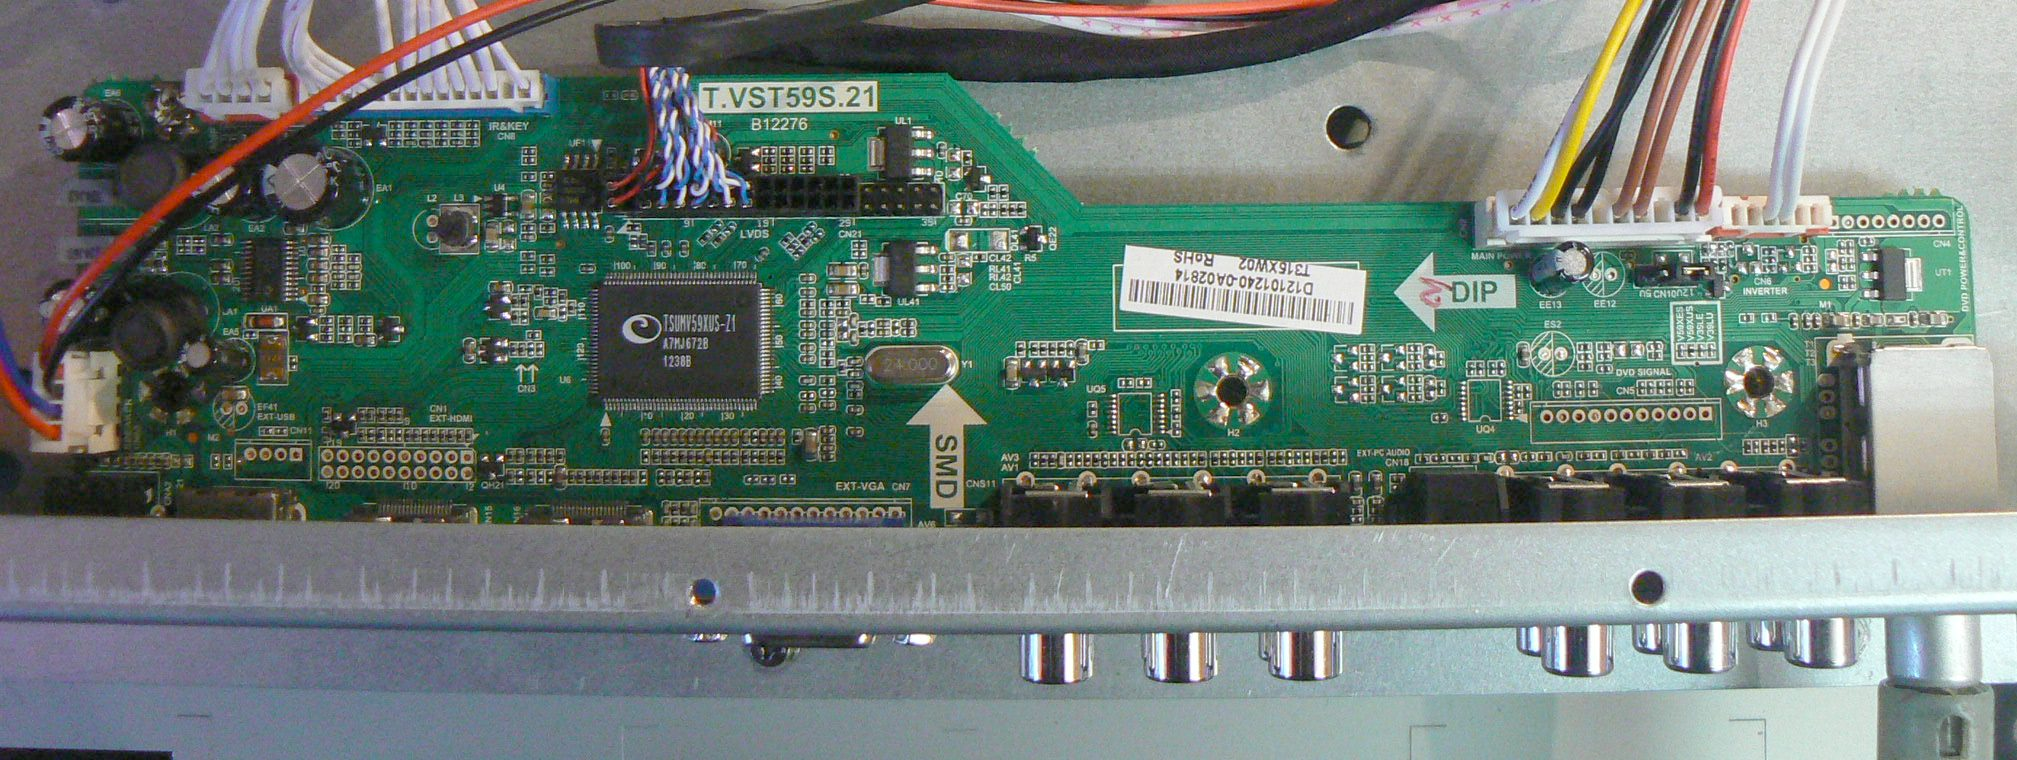 Прошивка SATURN LCD32T Main Board-T.VST59S.21